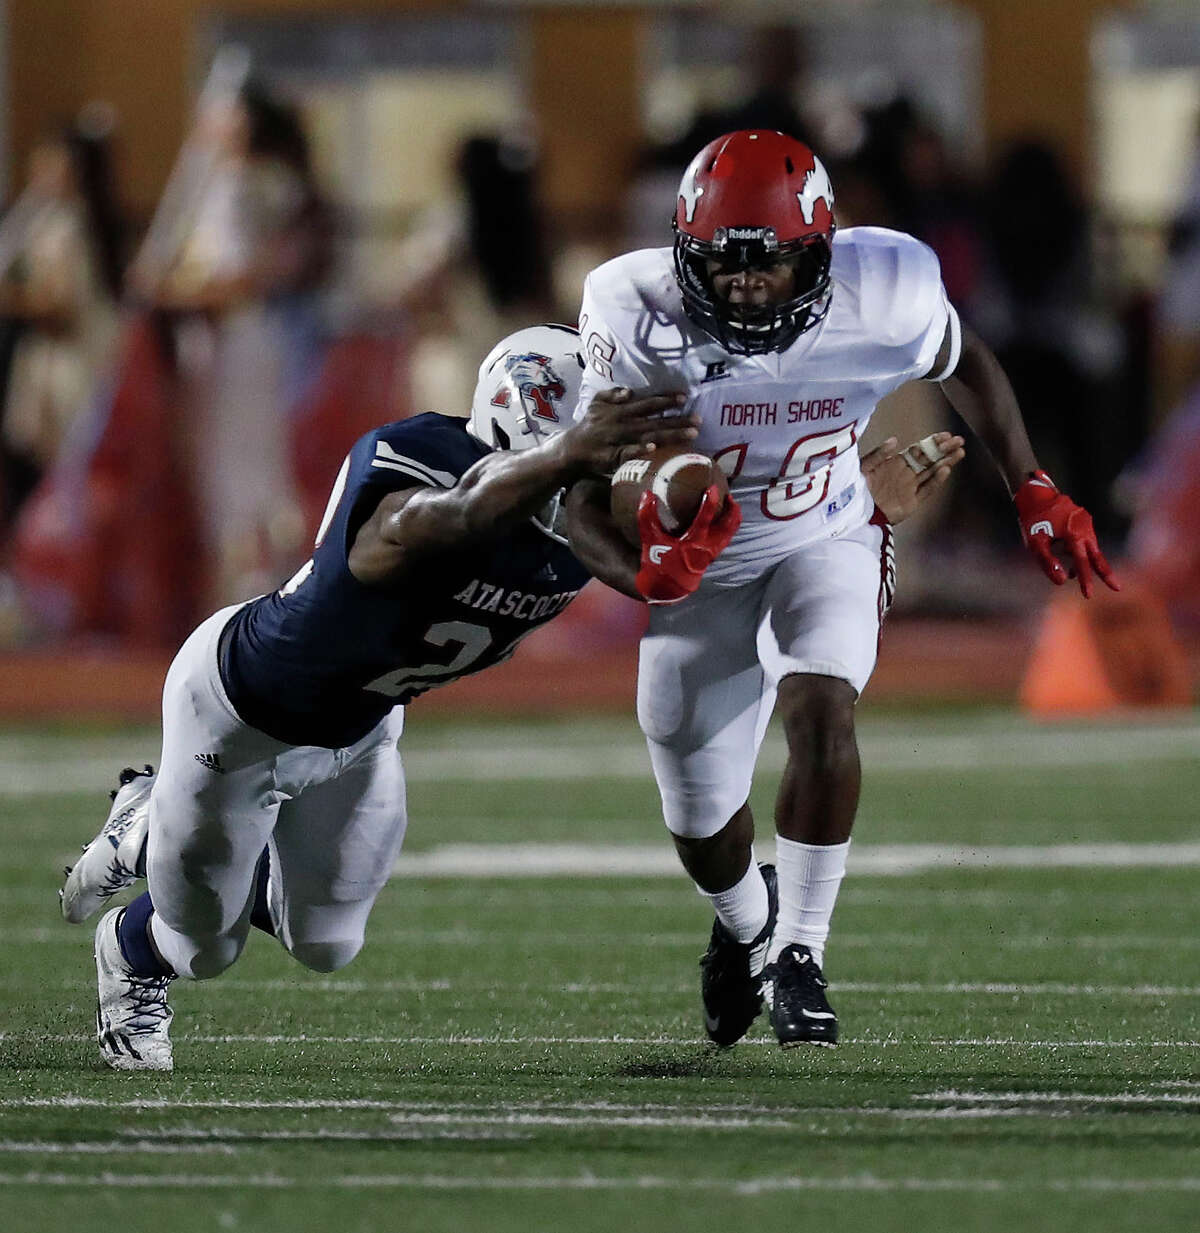 CLASS 6A 2. North Shore (6-1) This week: vs. Channelview, 7 p.m. Friday at Maddry